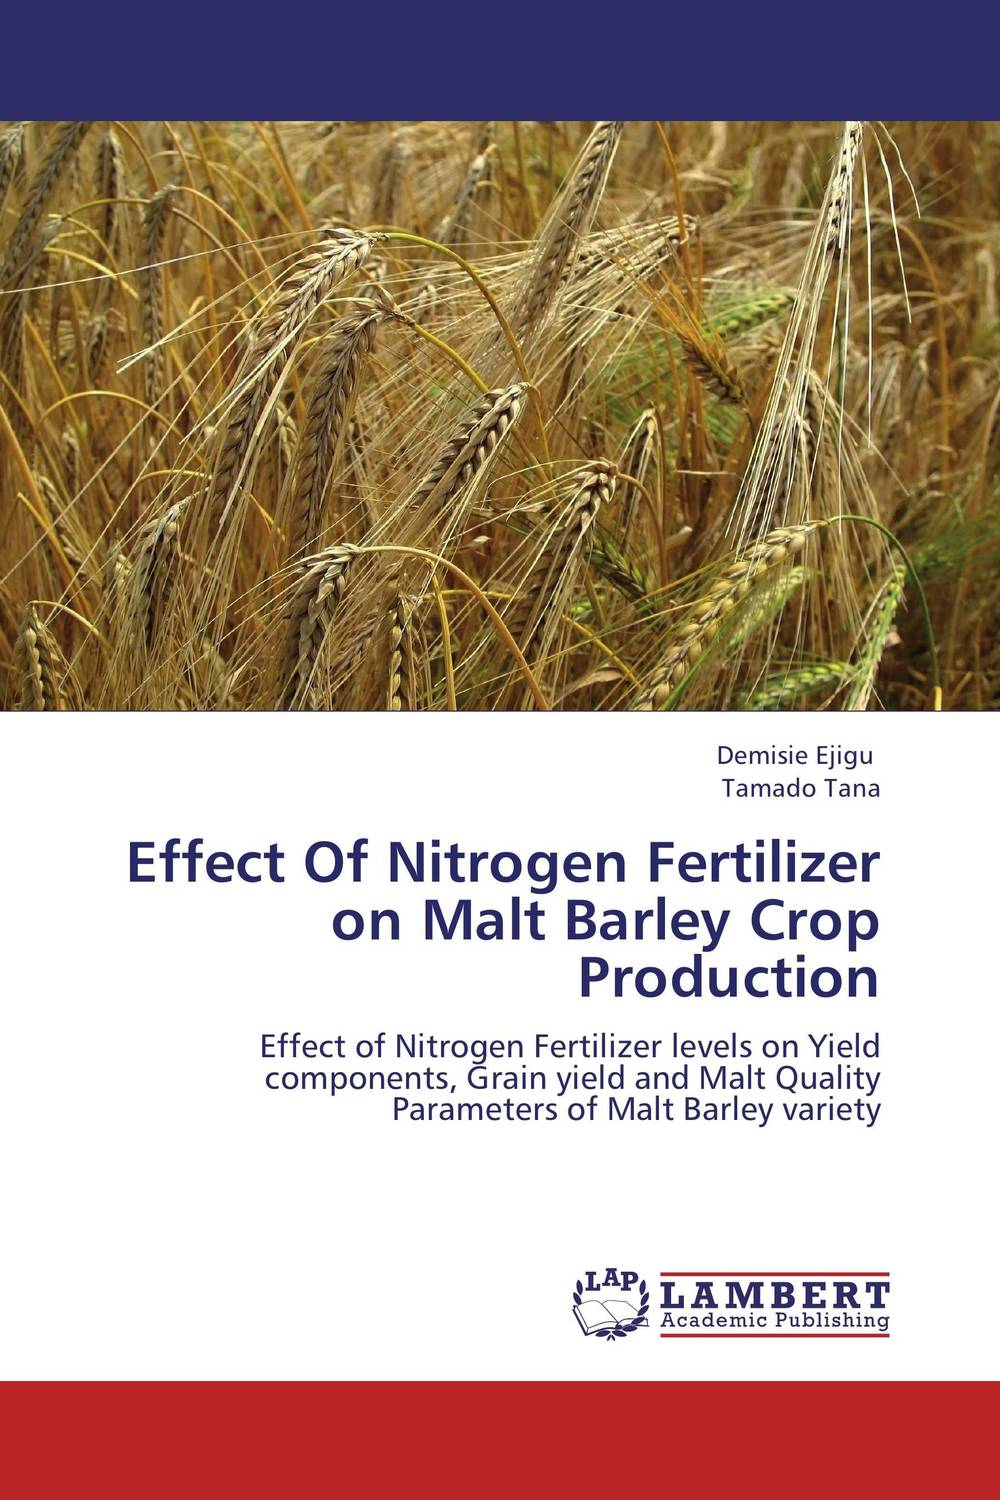 Effect Of Nitrogen Fertilizer on Malt Barley Crop Production butterflies in the barley